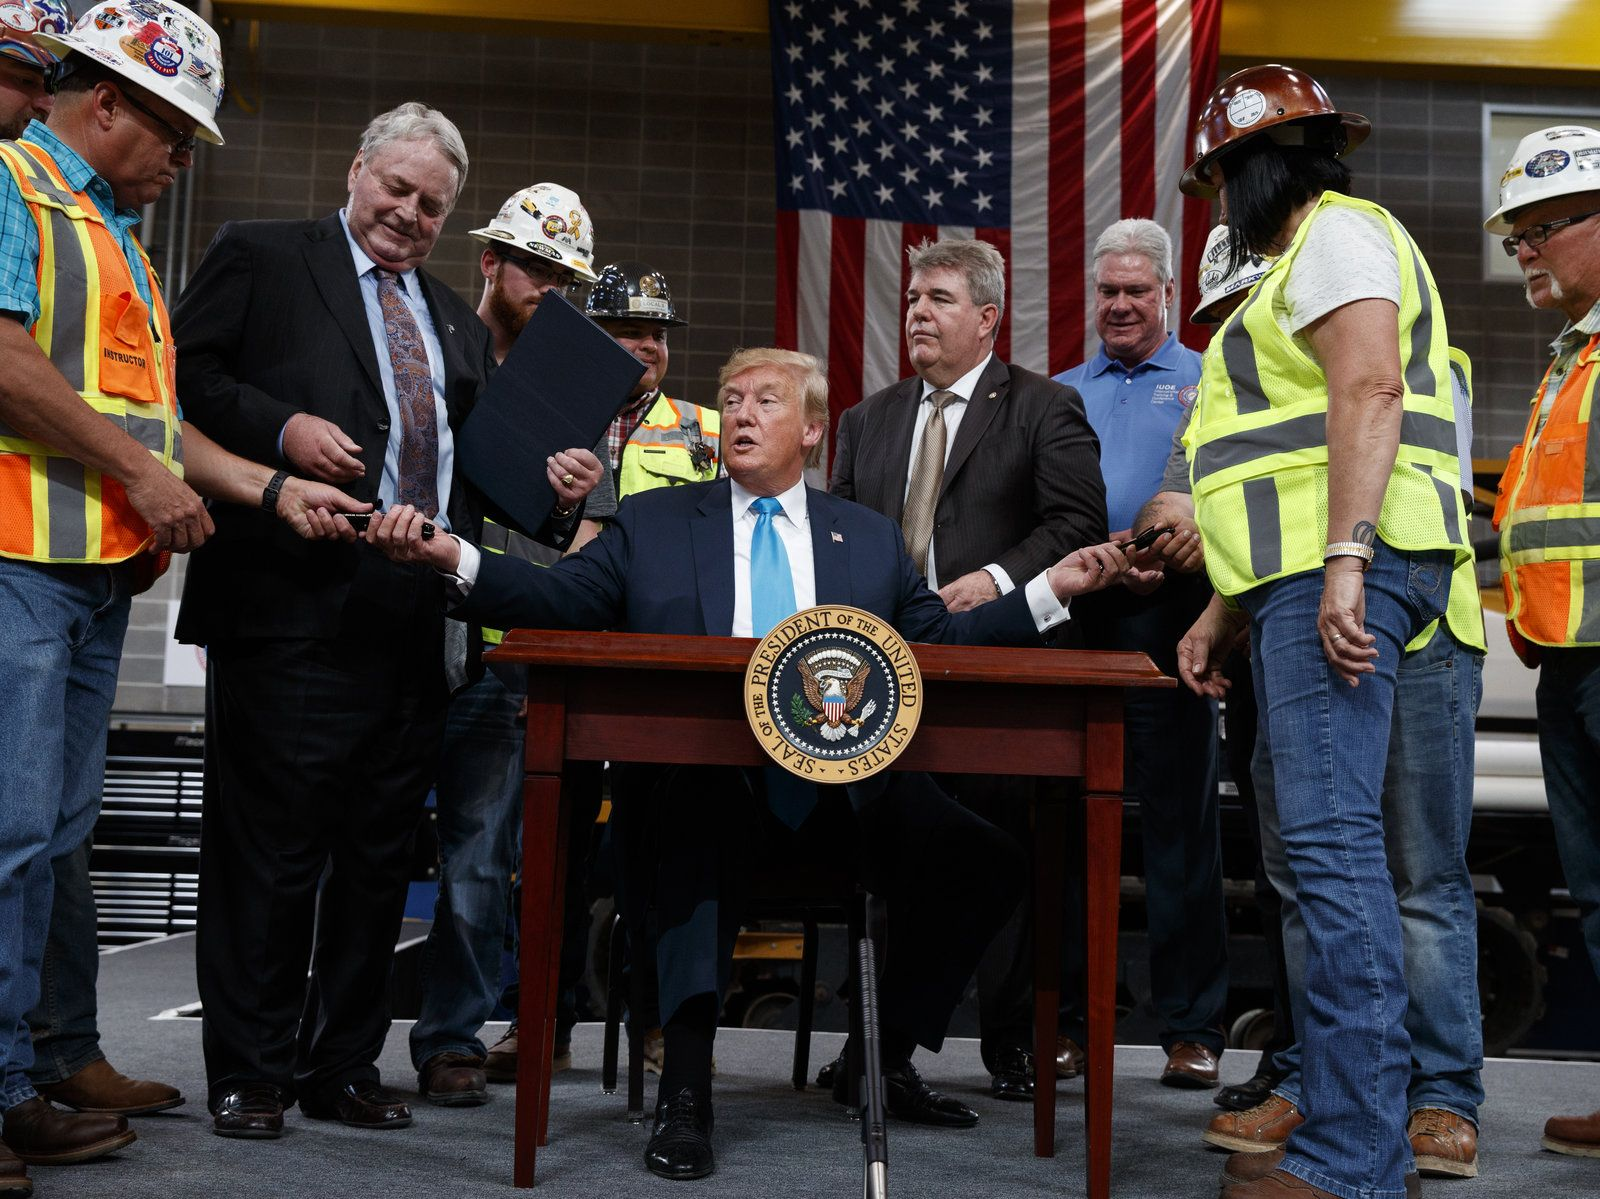 Trump Signs Executive Orders In Push To Make It Easier To Build Oil And Gas Pipelines